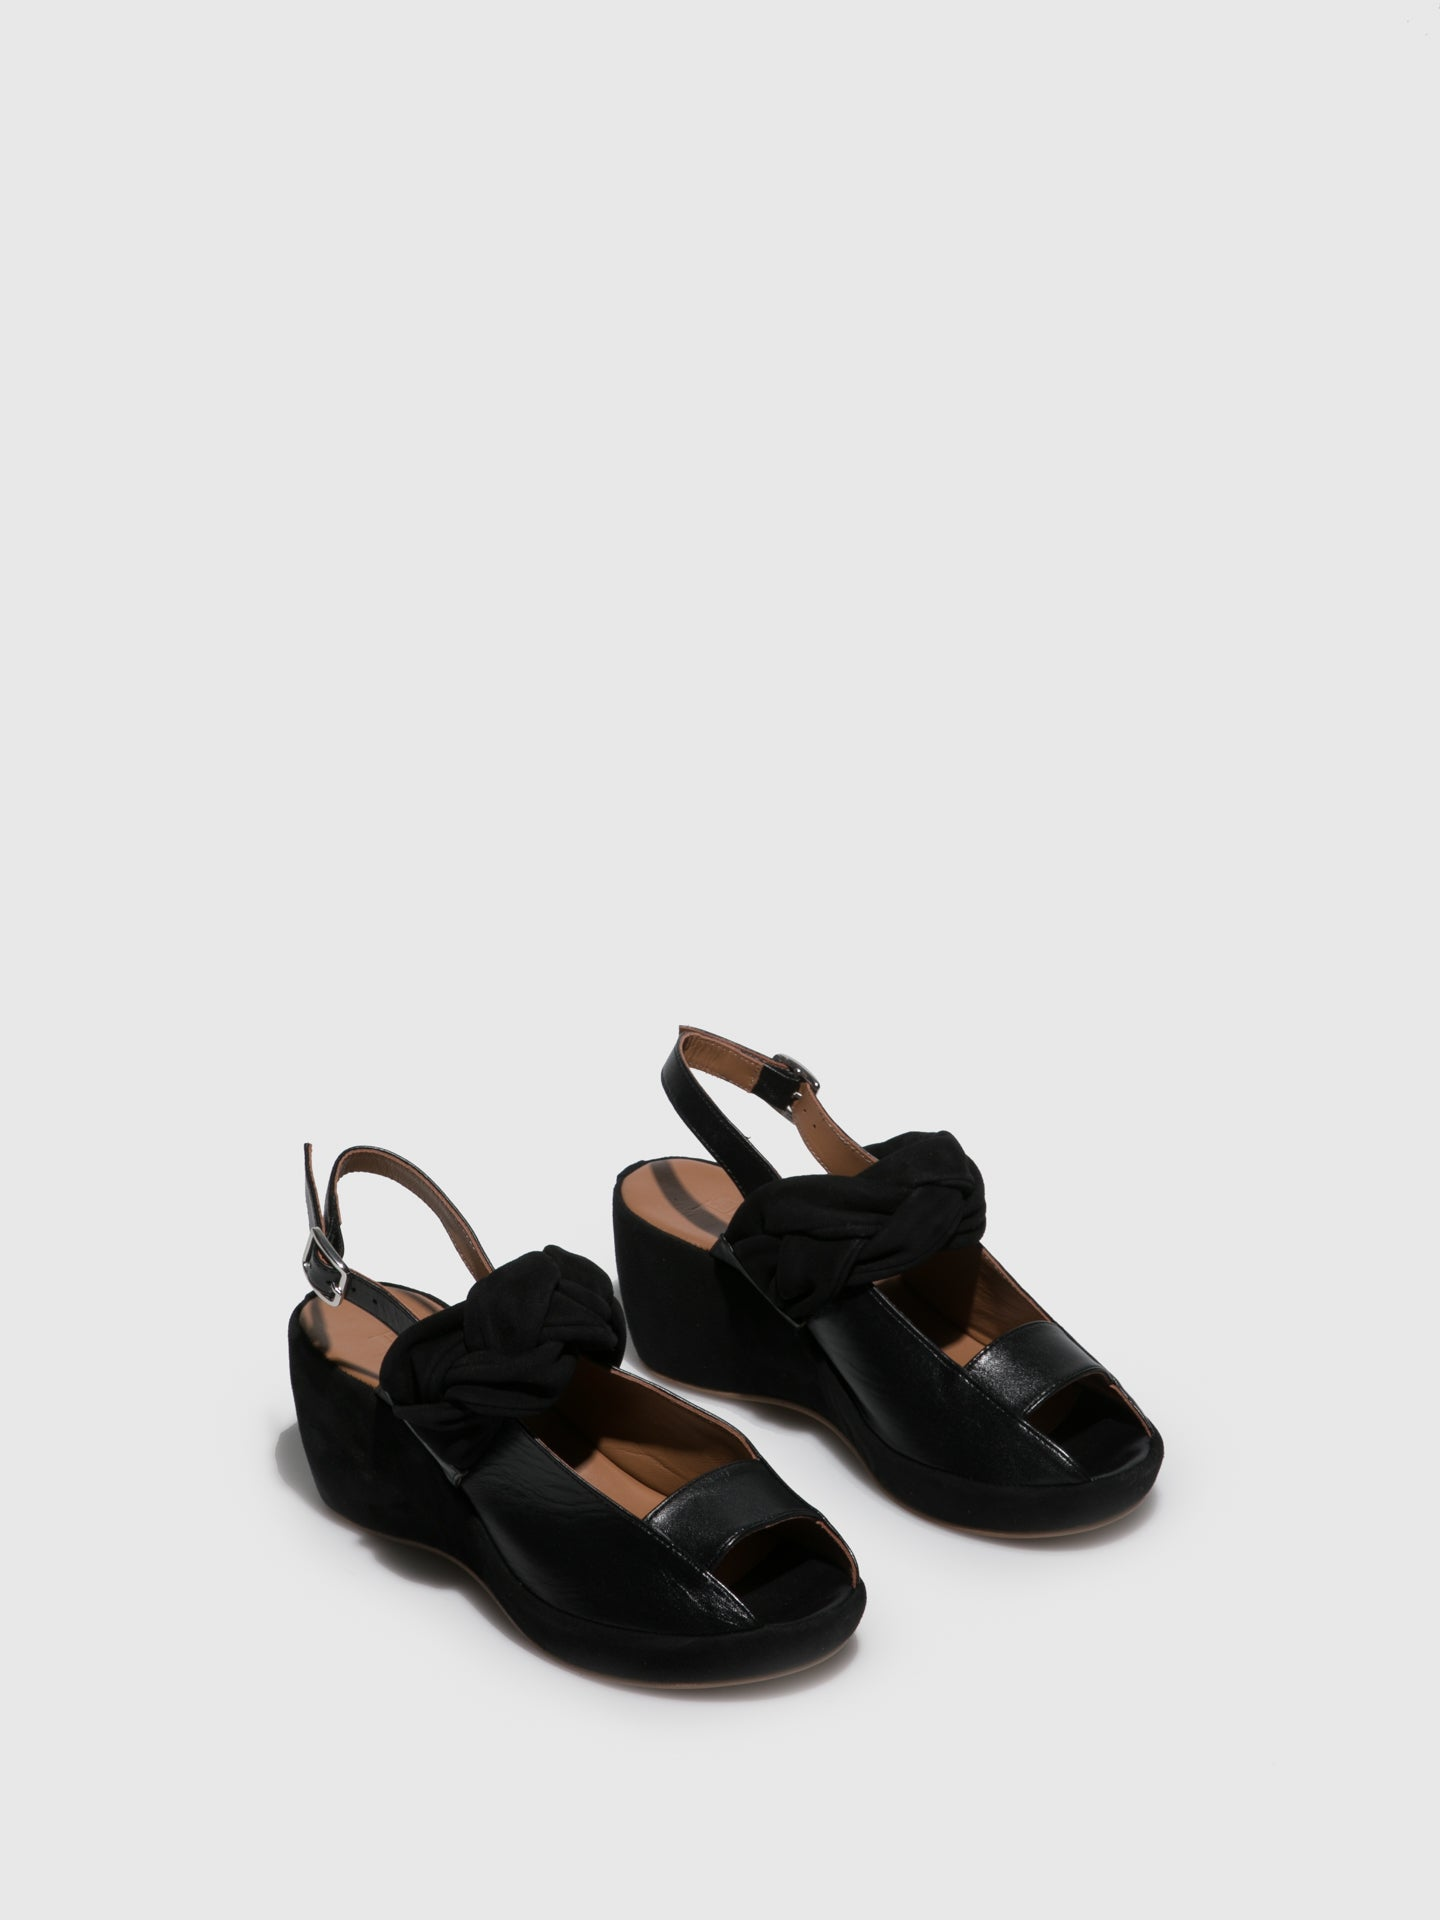 JJ Heitor Black Leather Wedge Sandals